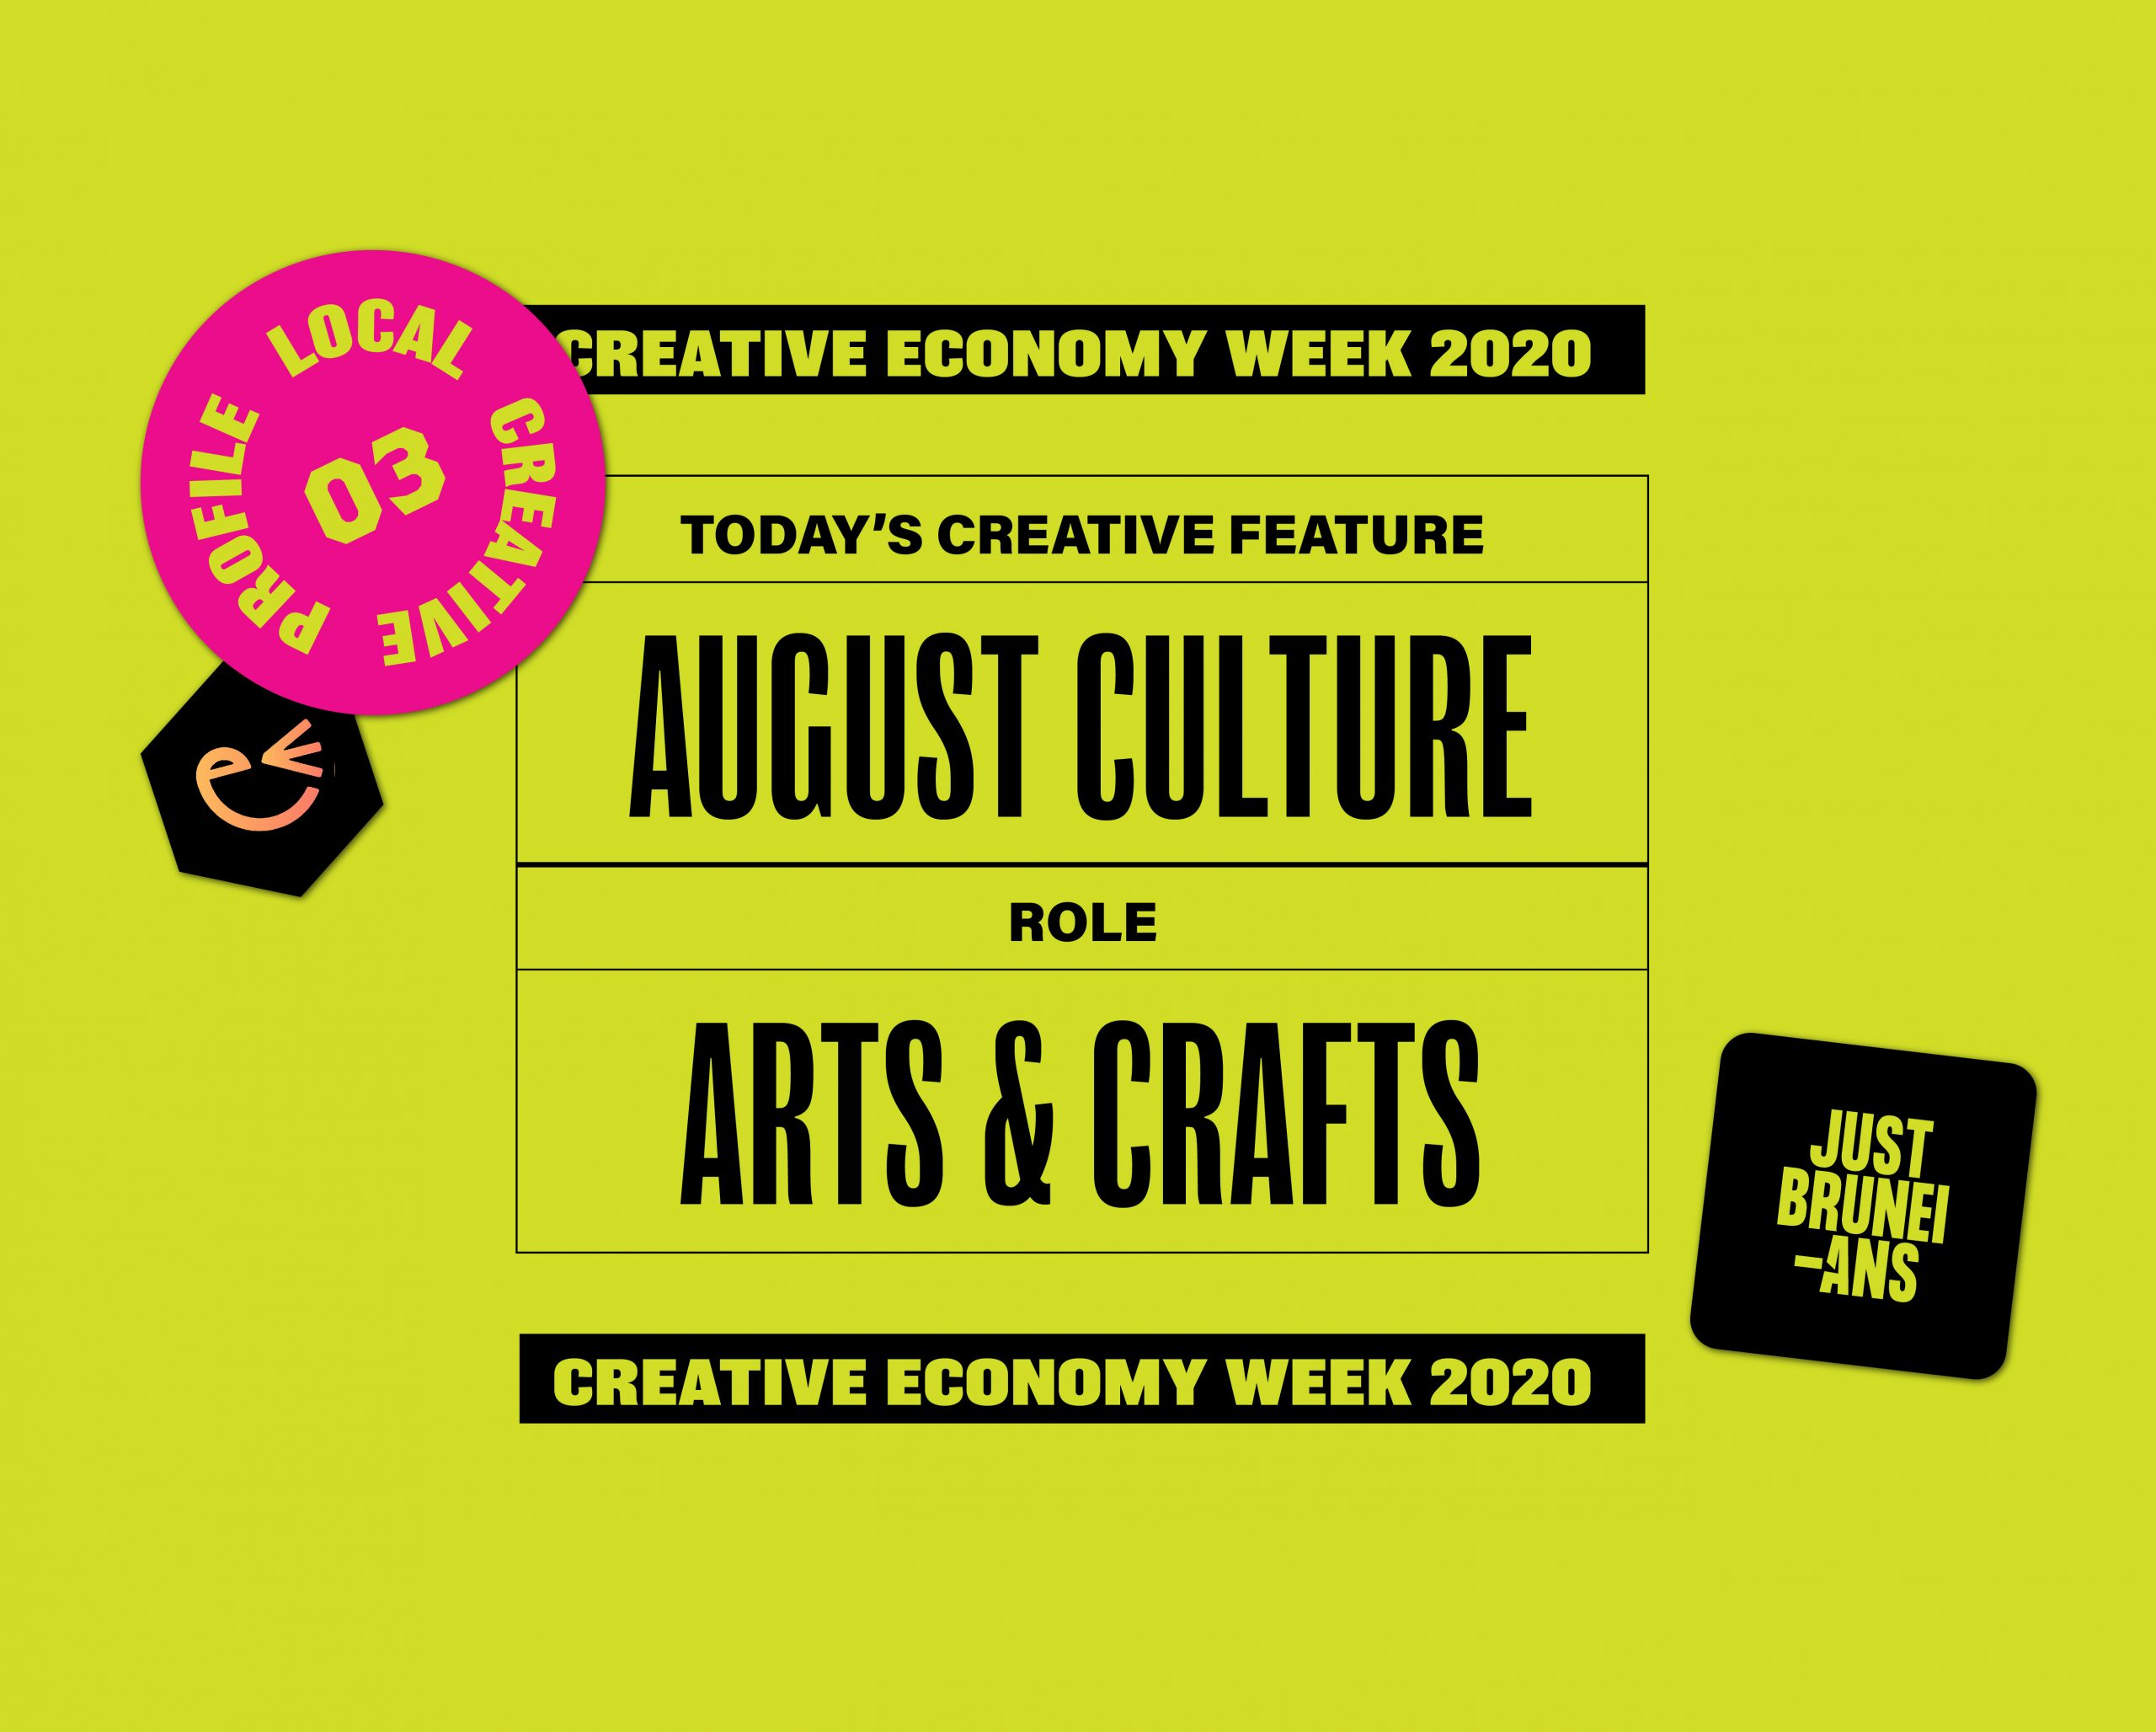 Today's Creative Feature: August Culture | Creative Economy Week 2020